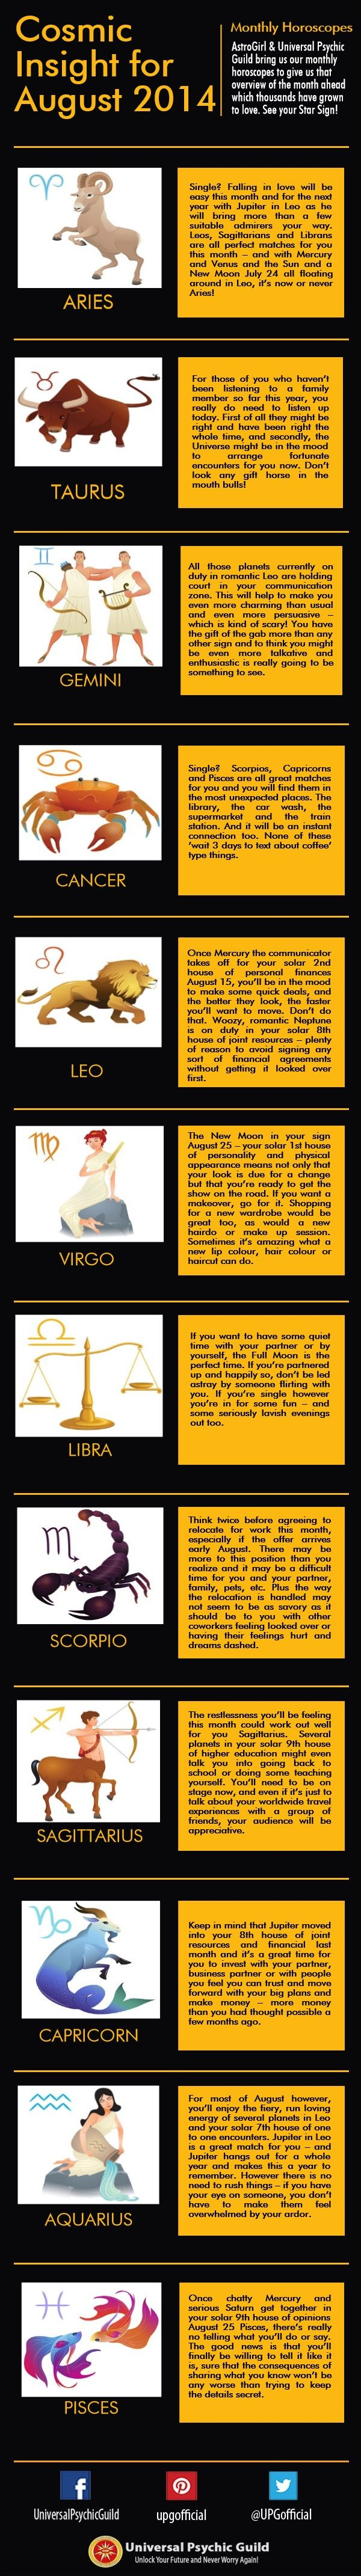 """In case you missed this: """"Cosmic Insight for August 2014"""". Below is an #Infographic of your #Horoscope for the month of August to help you find the answers to what your future holds in all aspects of life."""